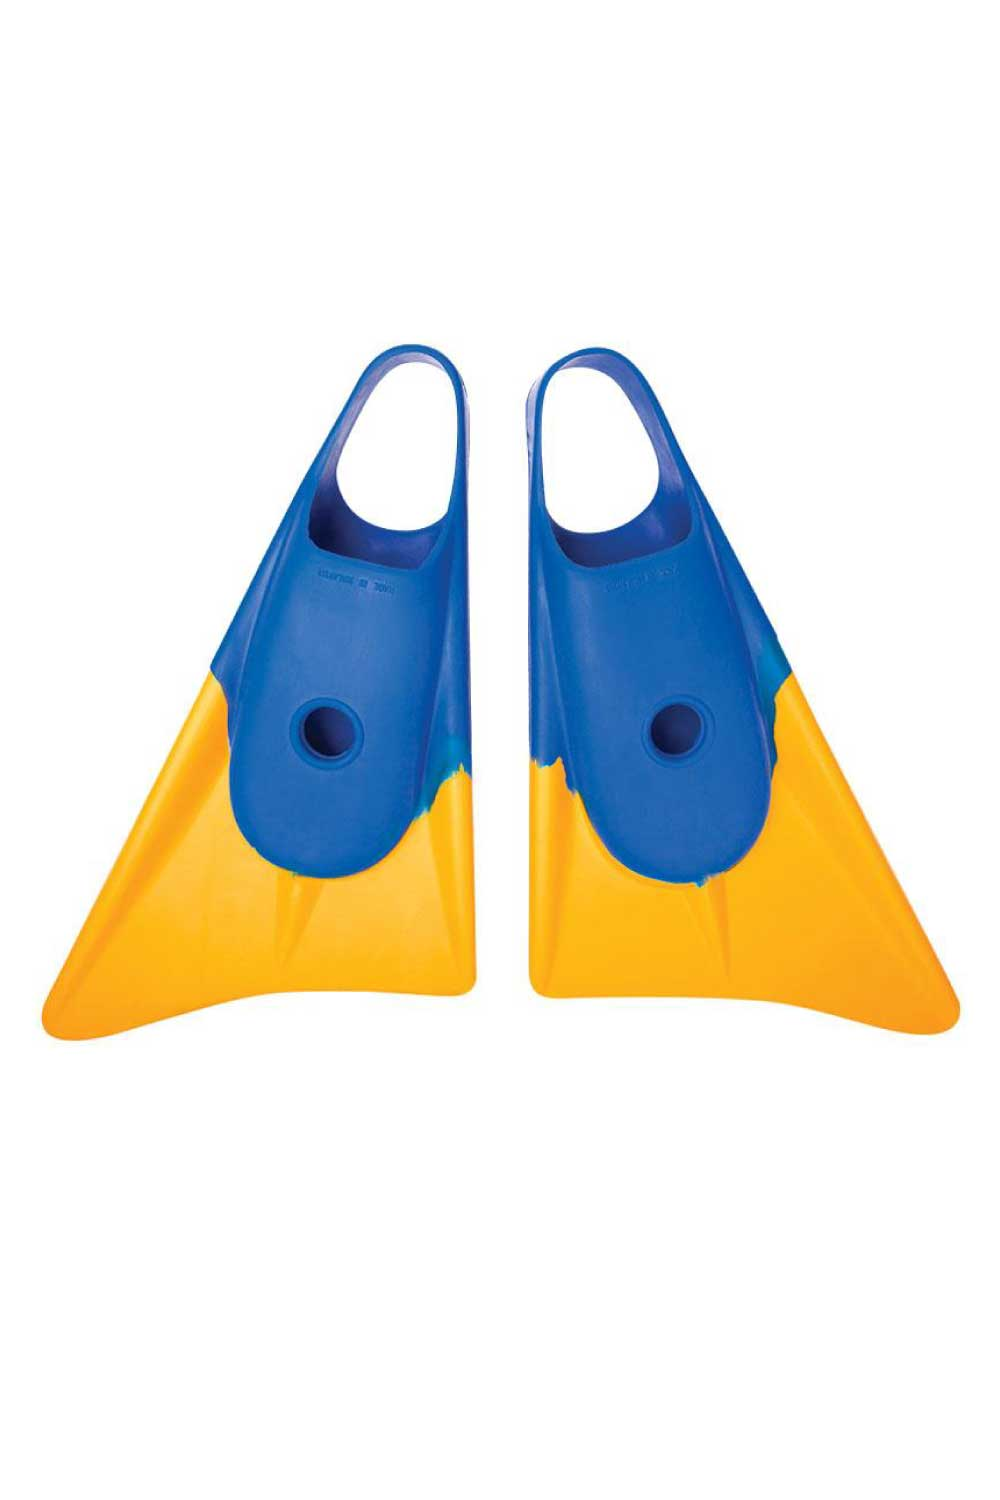 Limited Edition Bodyboard Fins Blue/Gold